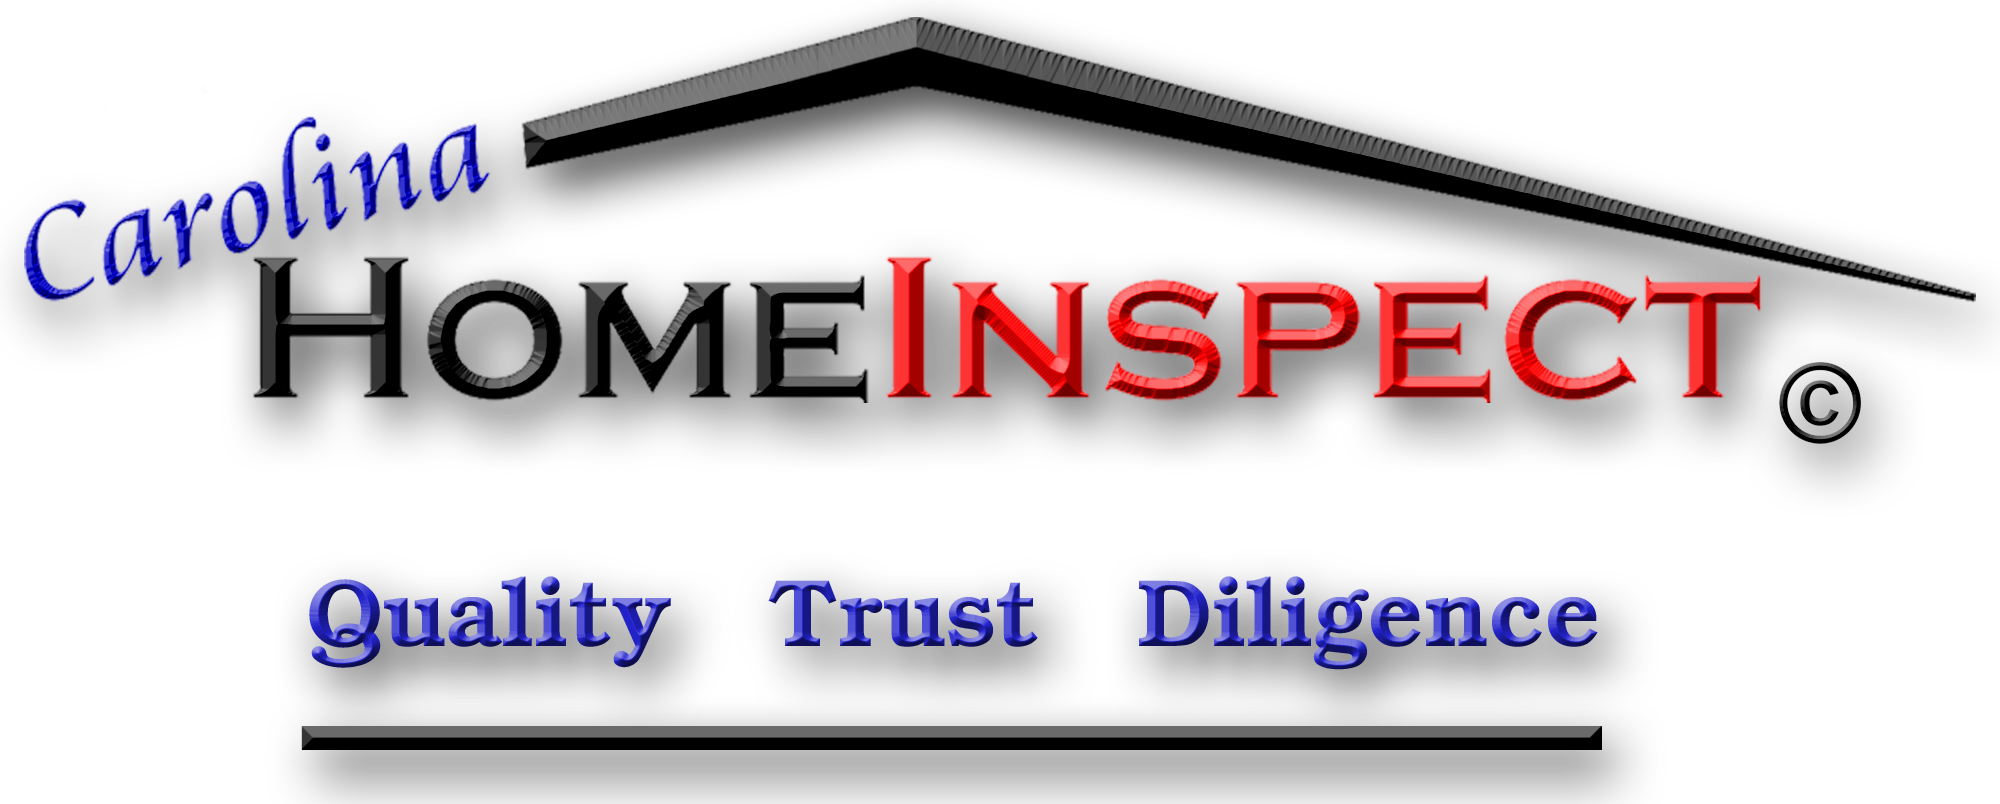 Home inspector in the York, Rock Hill, Lancaster, Indian Land, Fort Mill, Tega Cay and Chester, SC areas.